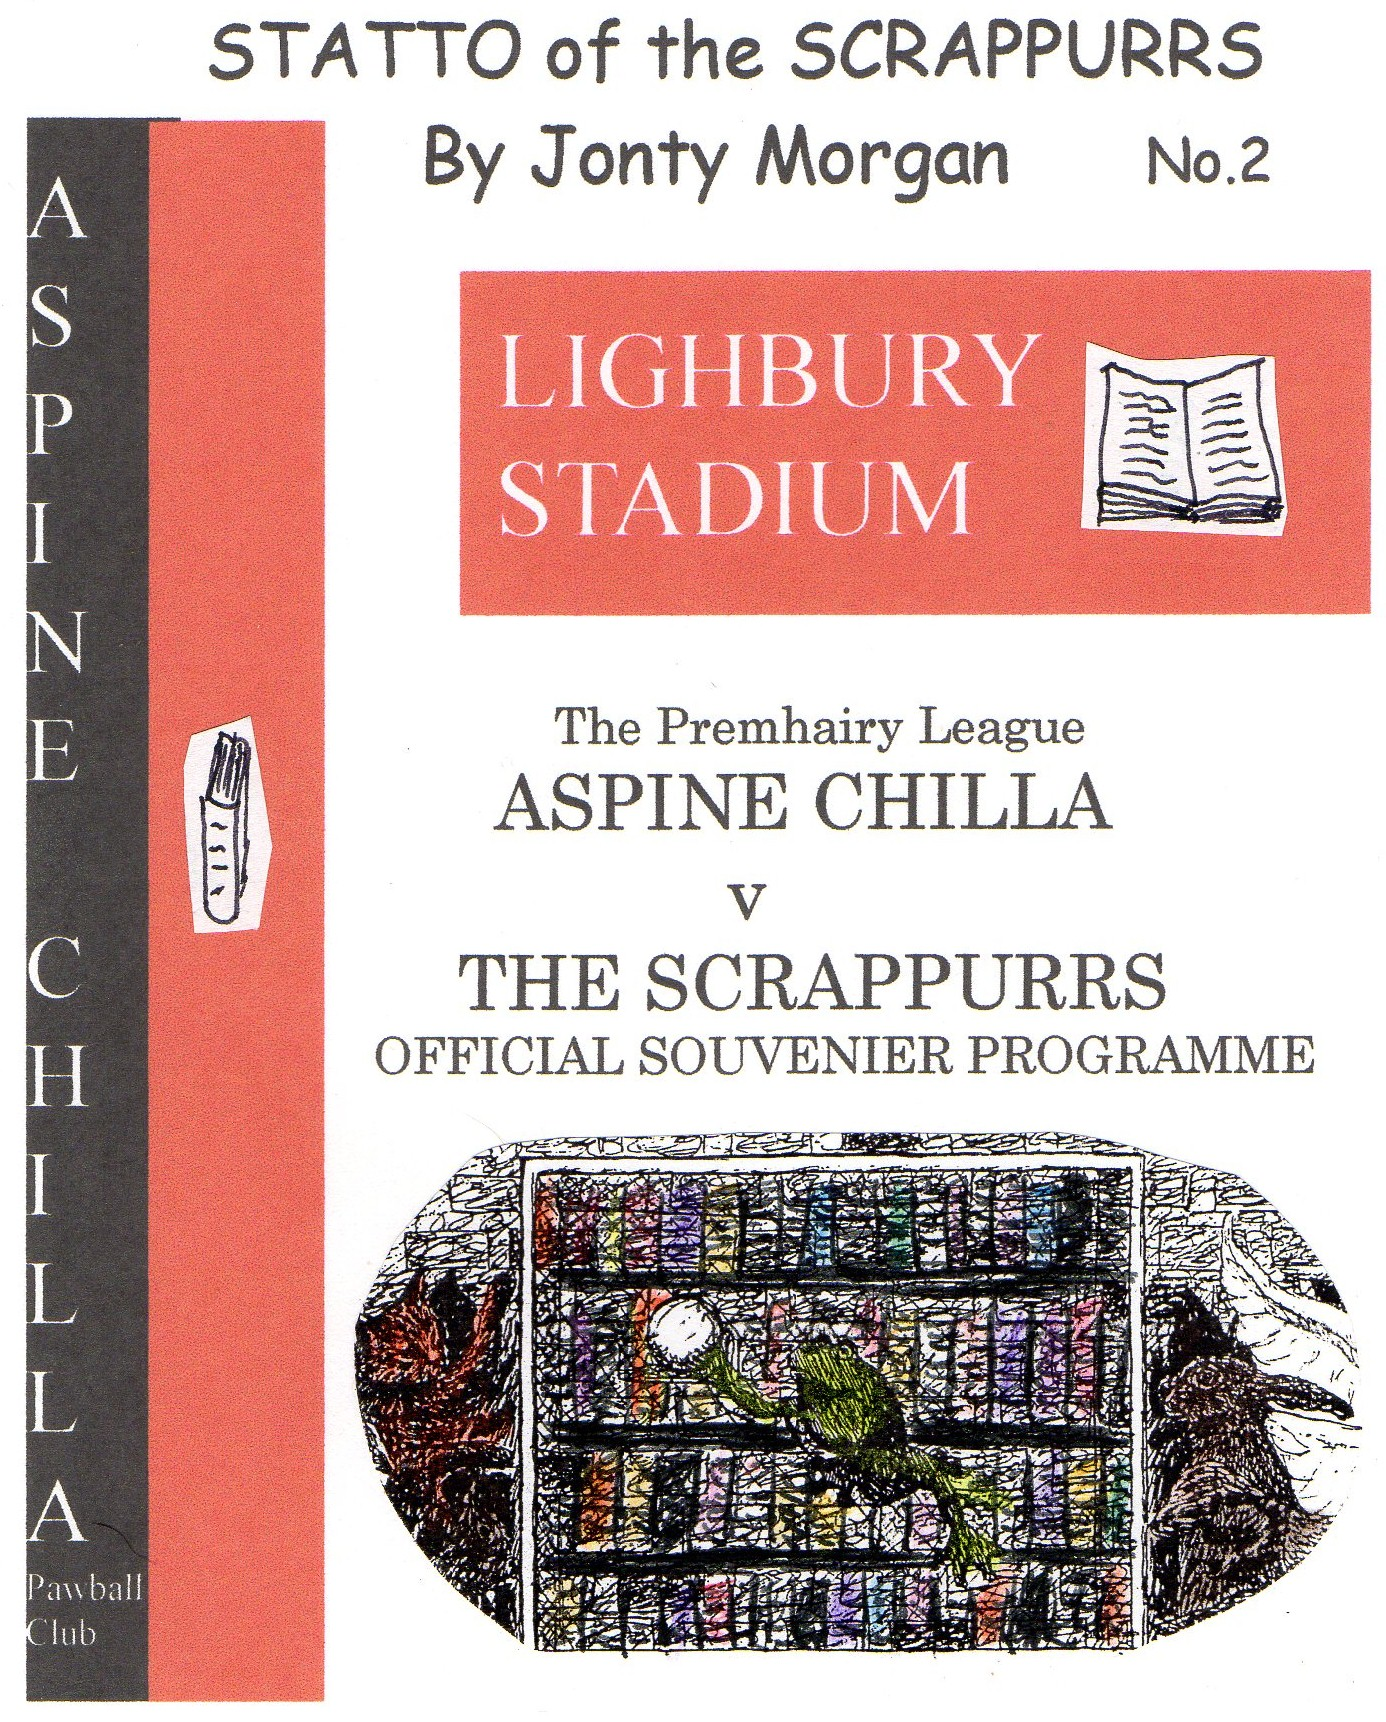 Statto of the Scrappurrs: Lighbury Stadium